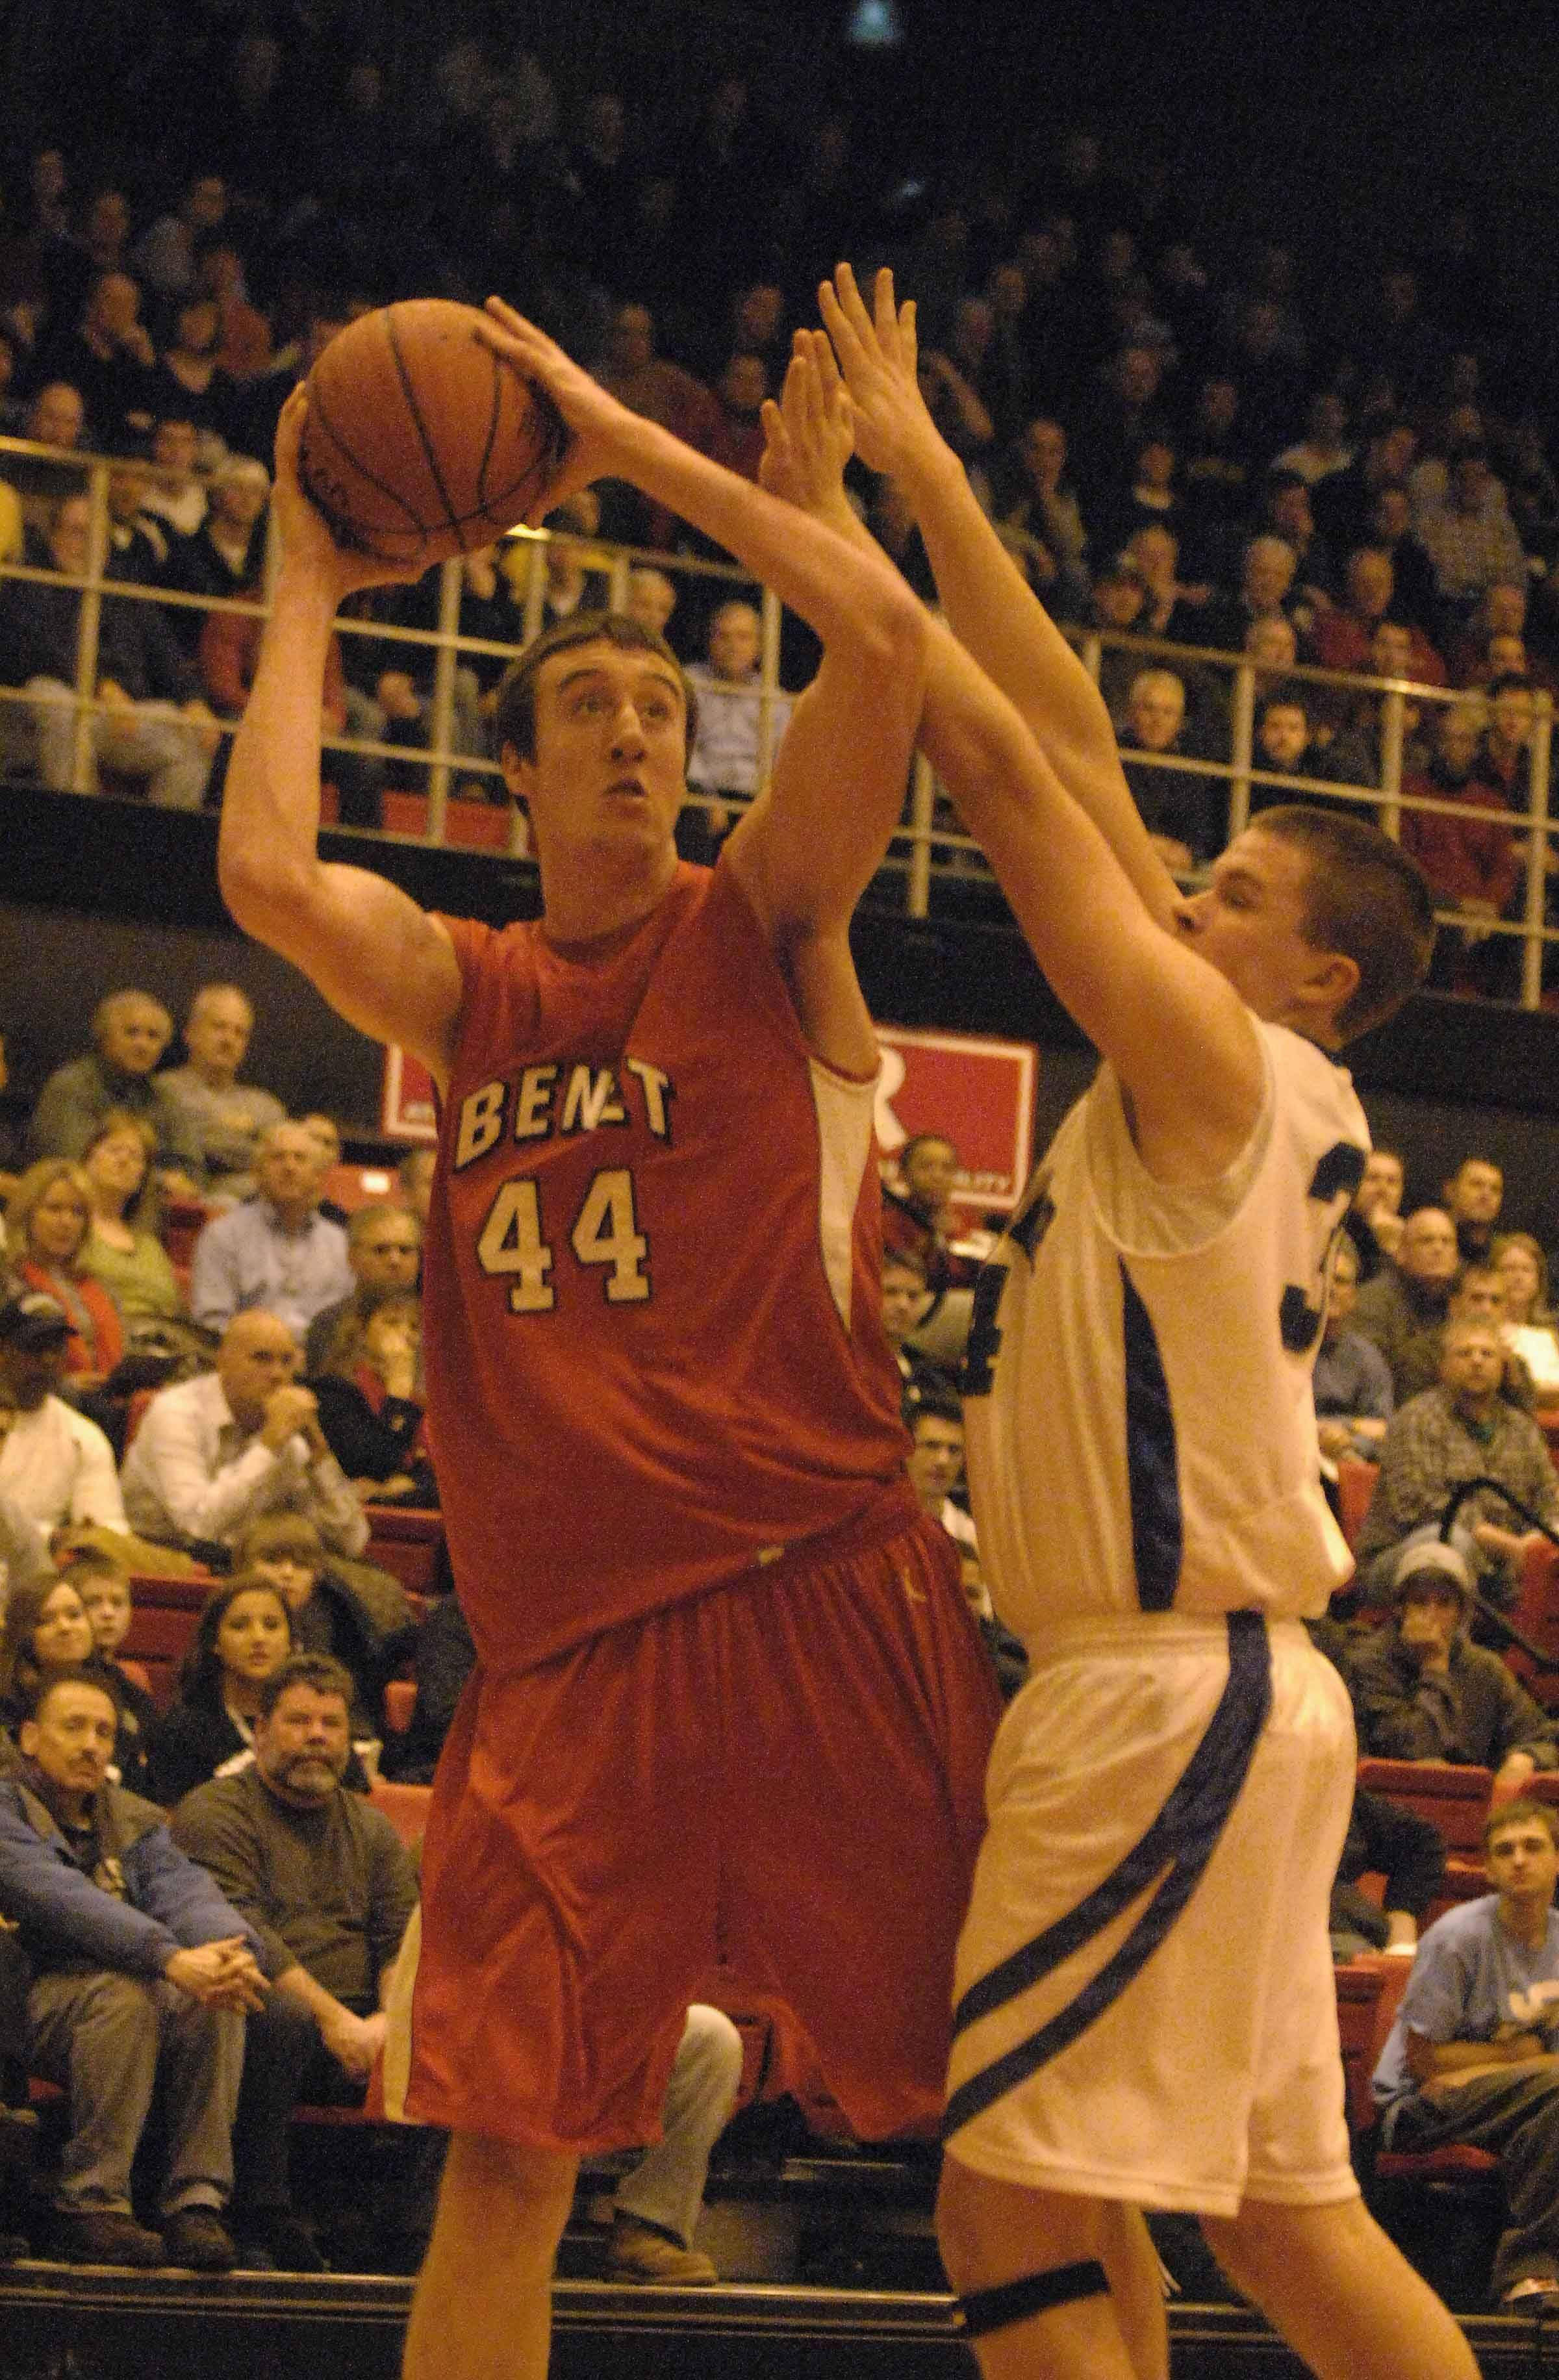 Frank Kaminsky of Benet looks to take a short during th Benet vs. New Trier boys game at Proviso West Tuesday.